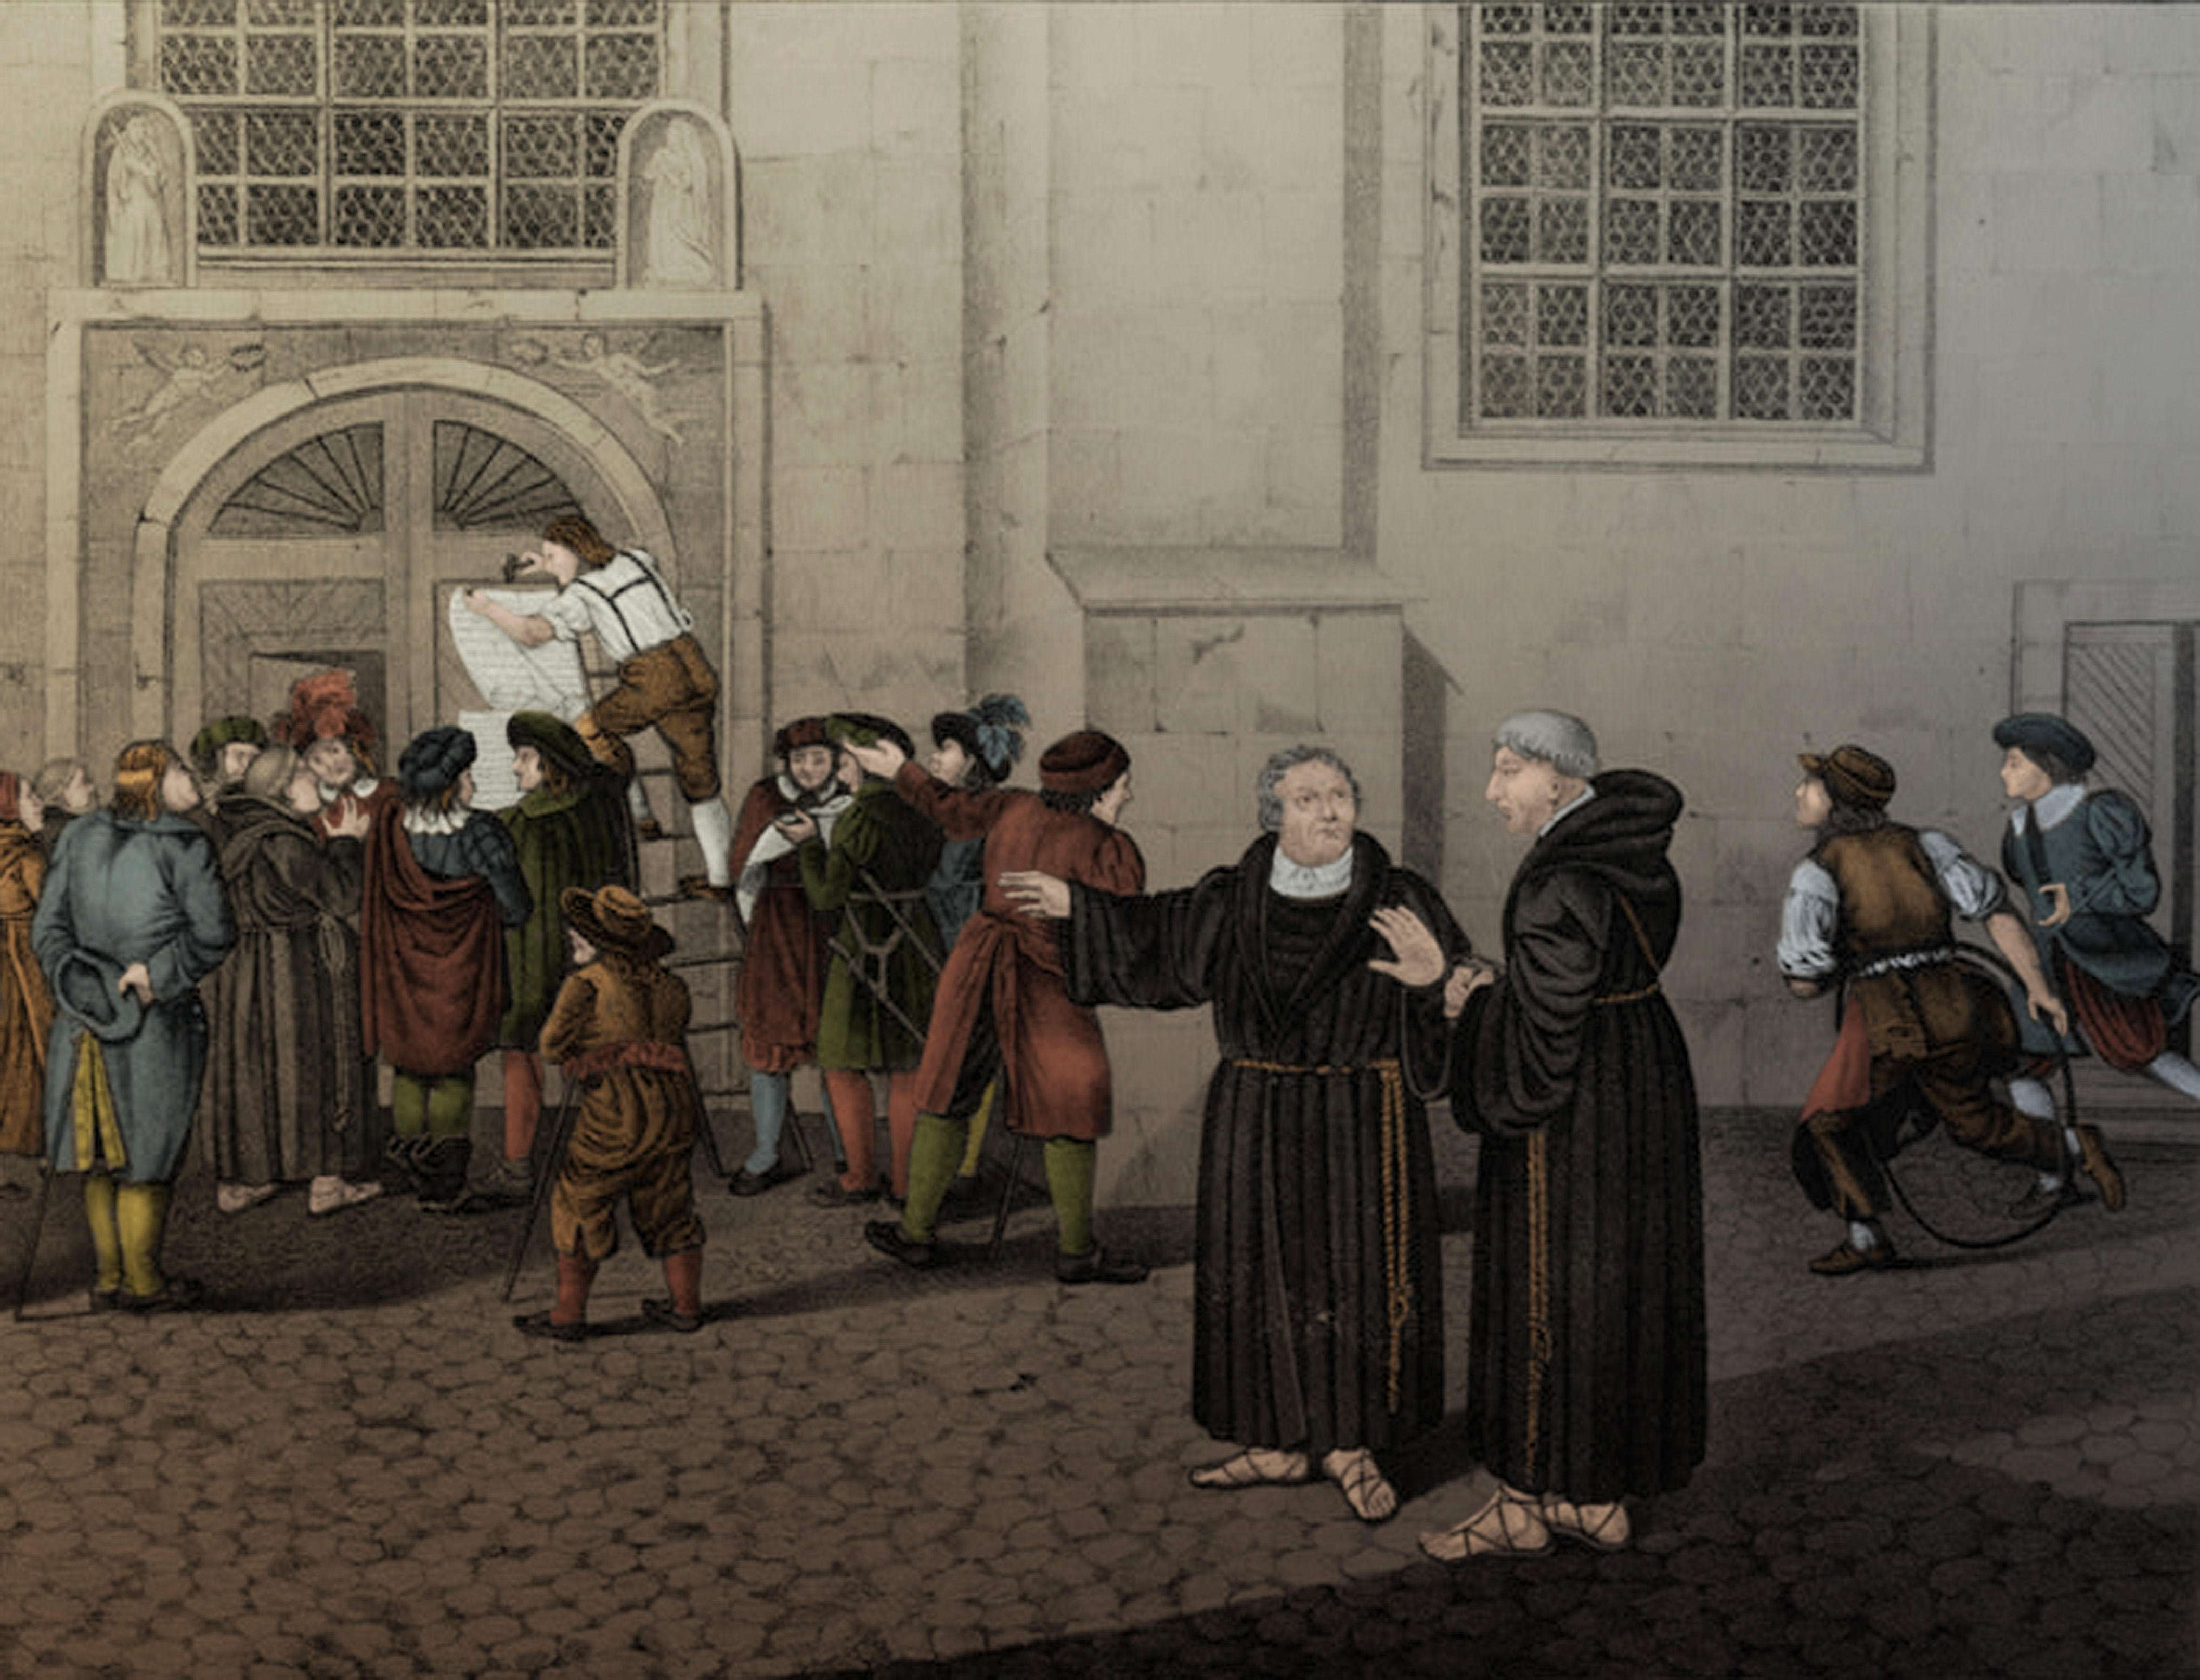 an analysis of martin luther in the early 1500s The movie luther covers the early years of martin luther's life, from his days as a monk in the early 1500s to the proclamation of the augsburg confession in 1530.